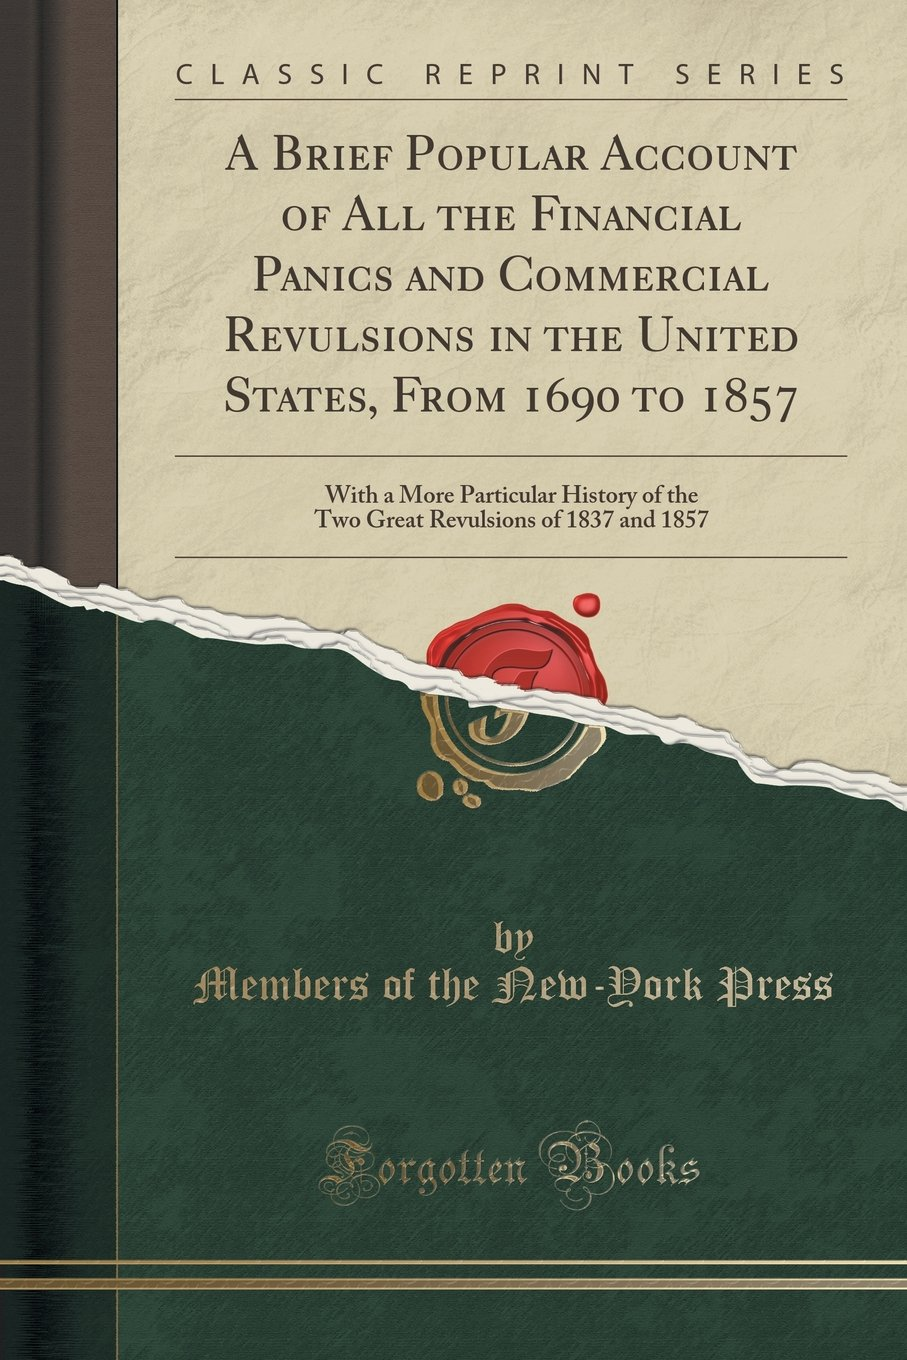 Download A Brief Popular Account of All the Financial Panics and Commercial Revulsions in the United States, From 1690 to 1857: With a More Particular History ... Revulsions of 1837 and 1857 (Classic Reprint) pdf epub